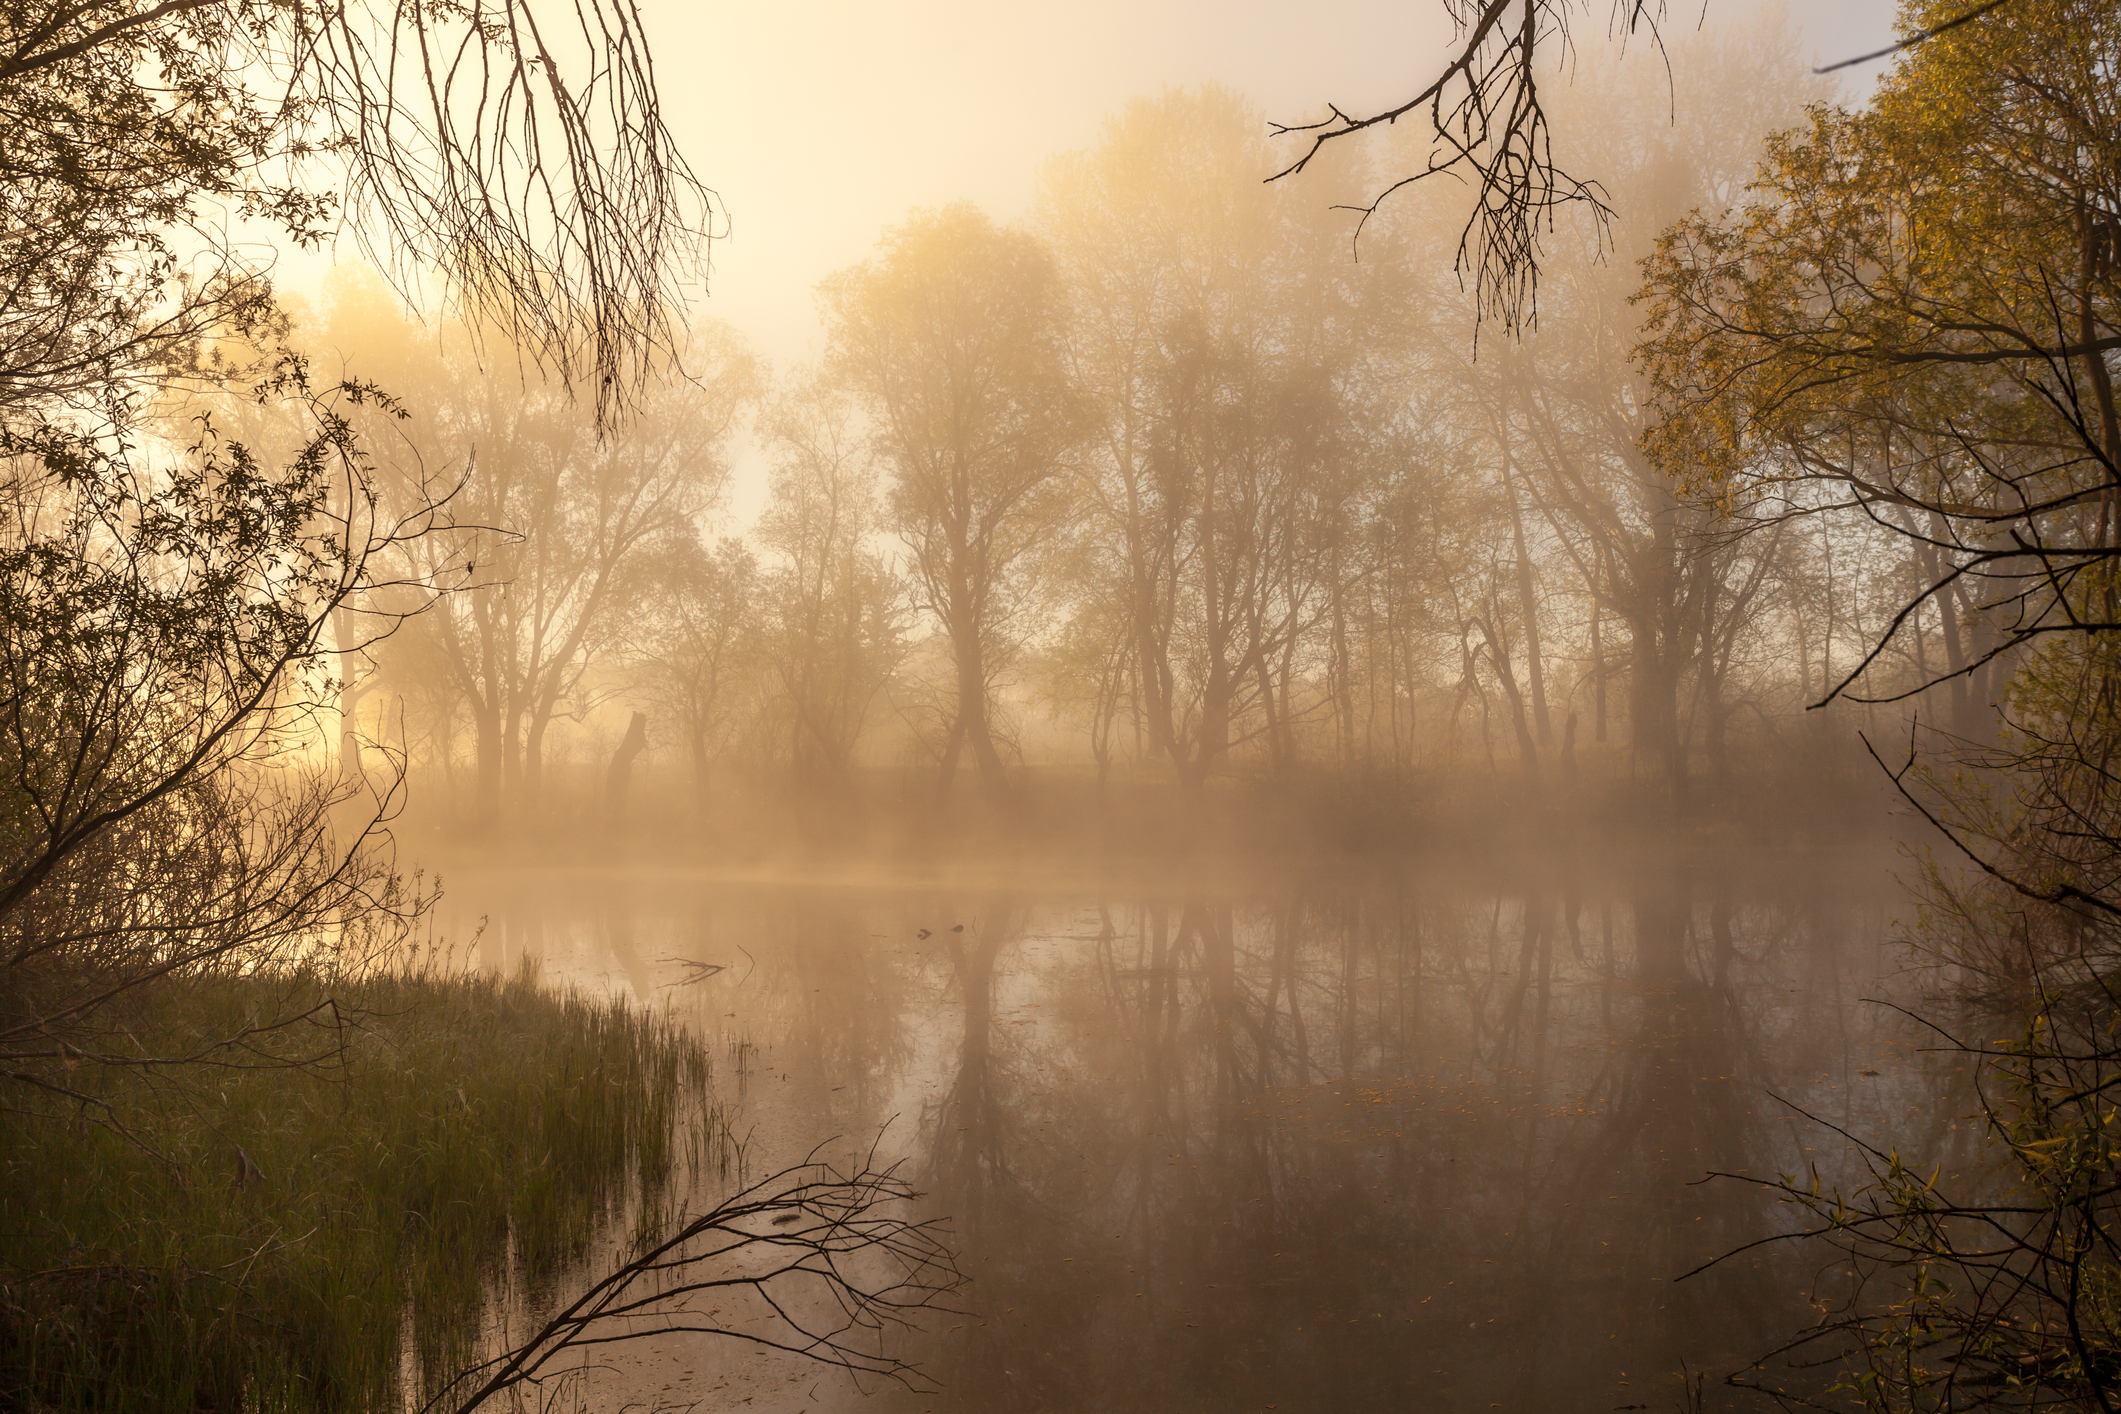 ©  Shico300  |  Dreamstime.com  -  Serene Misty Morning On A Lakeside Photo